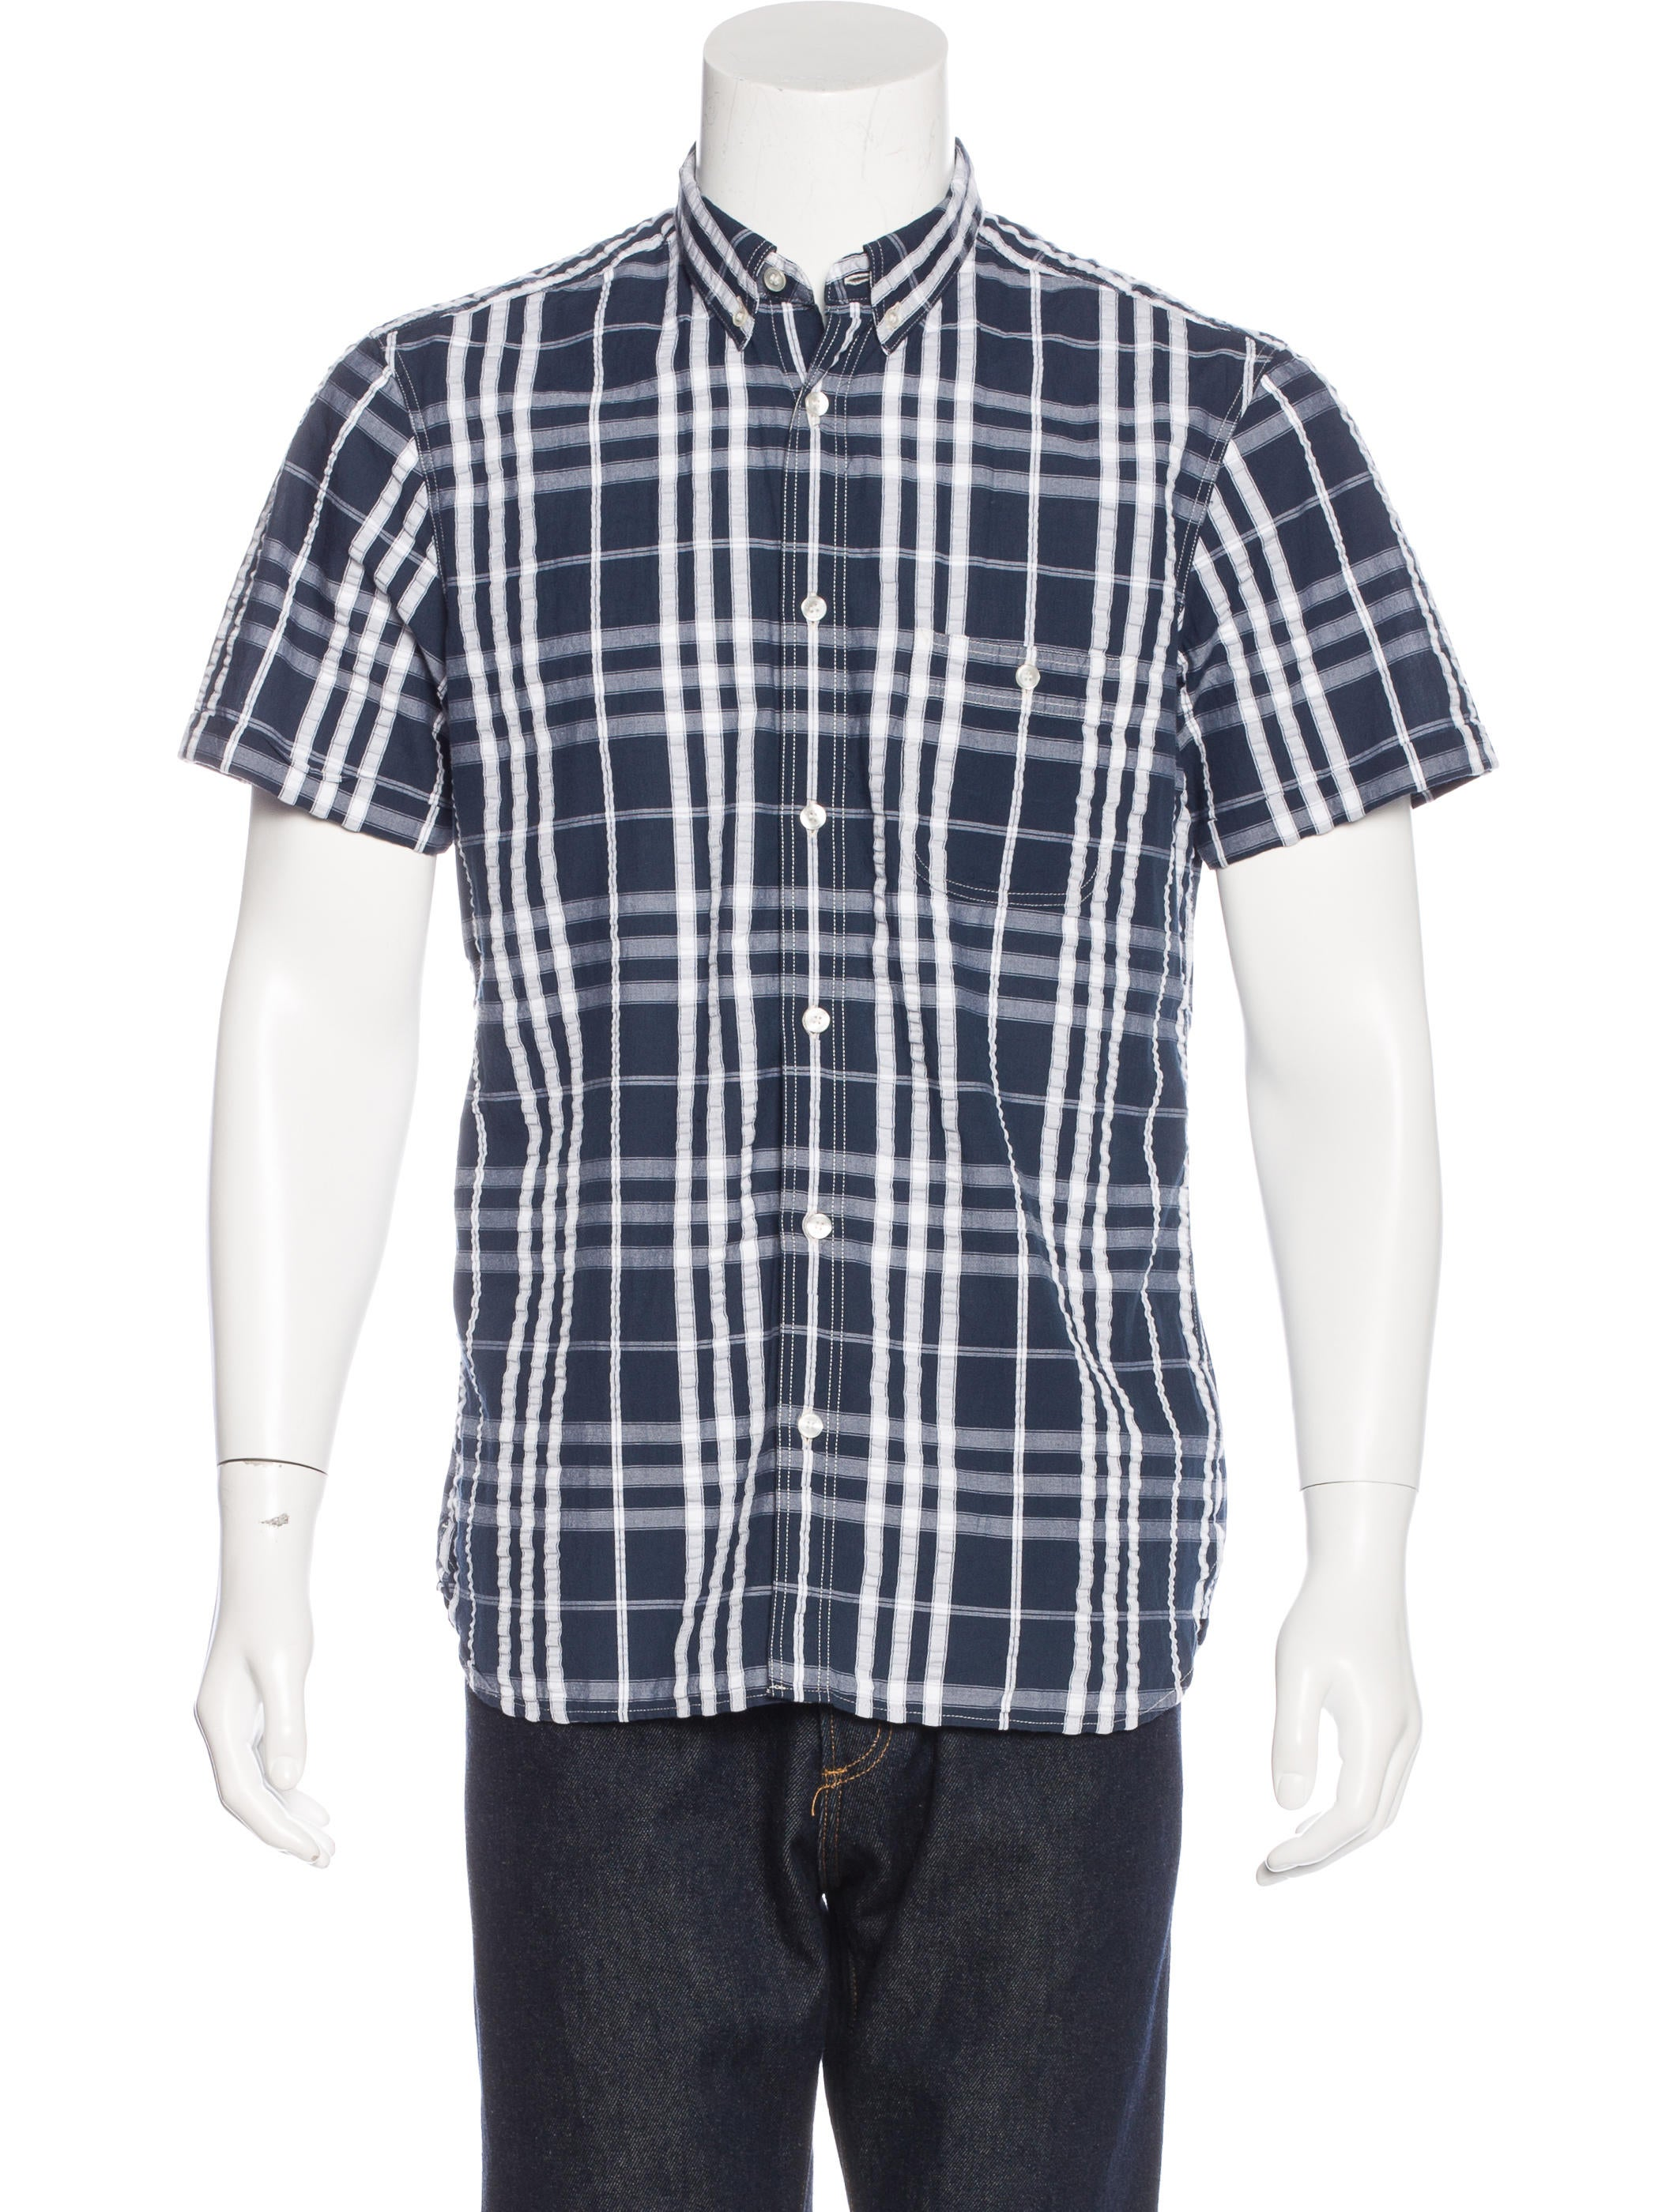 Burberry brit check woven shirt clothing bbr27095 for Burberry brit checked shirt